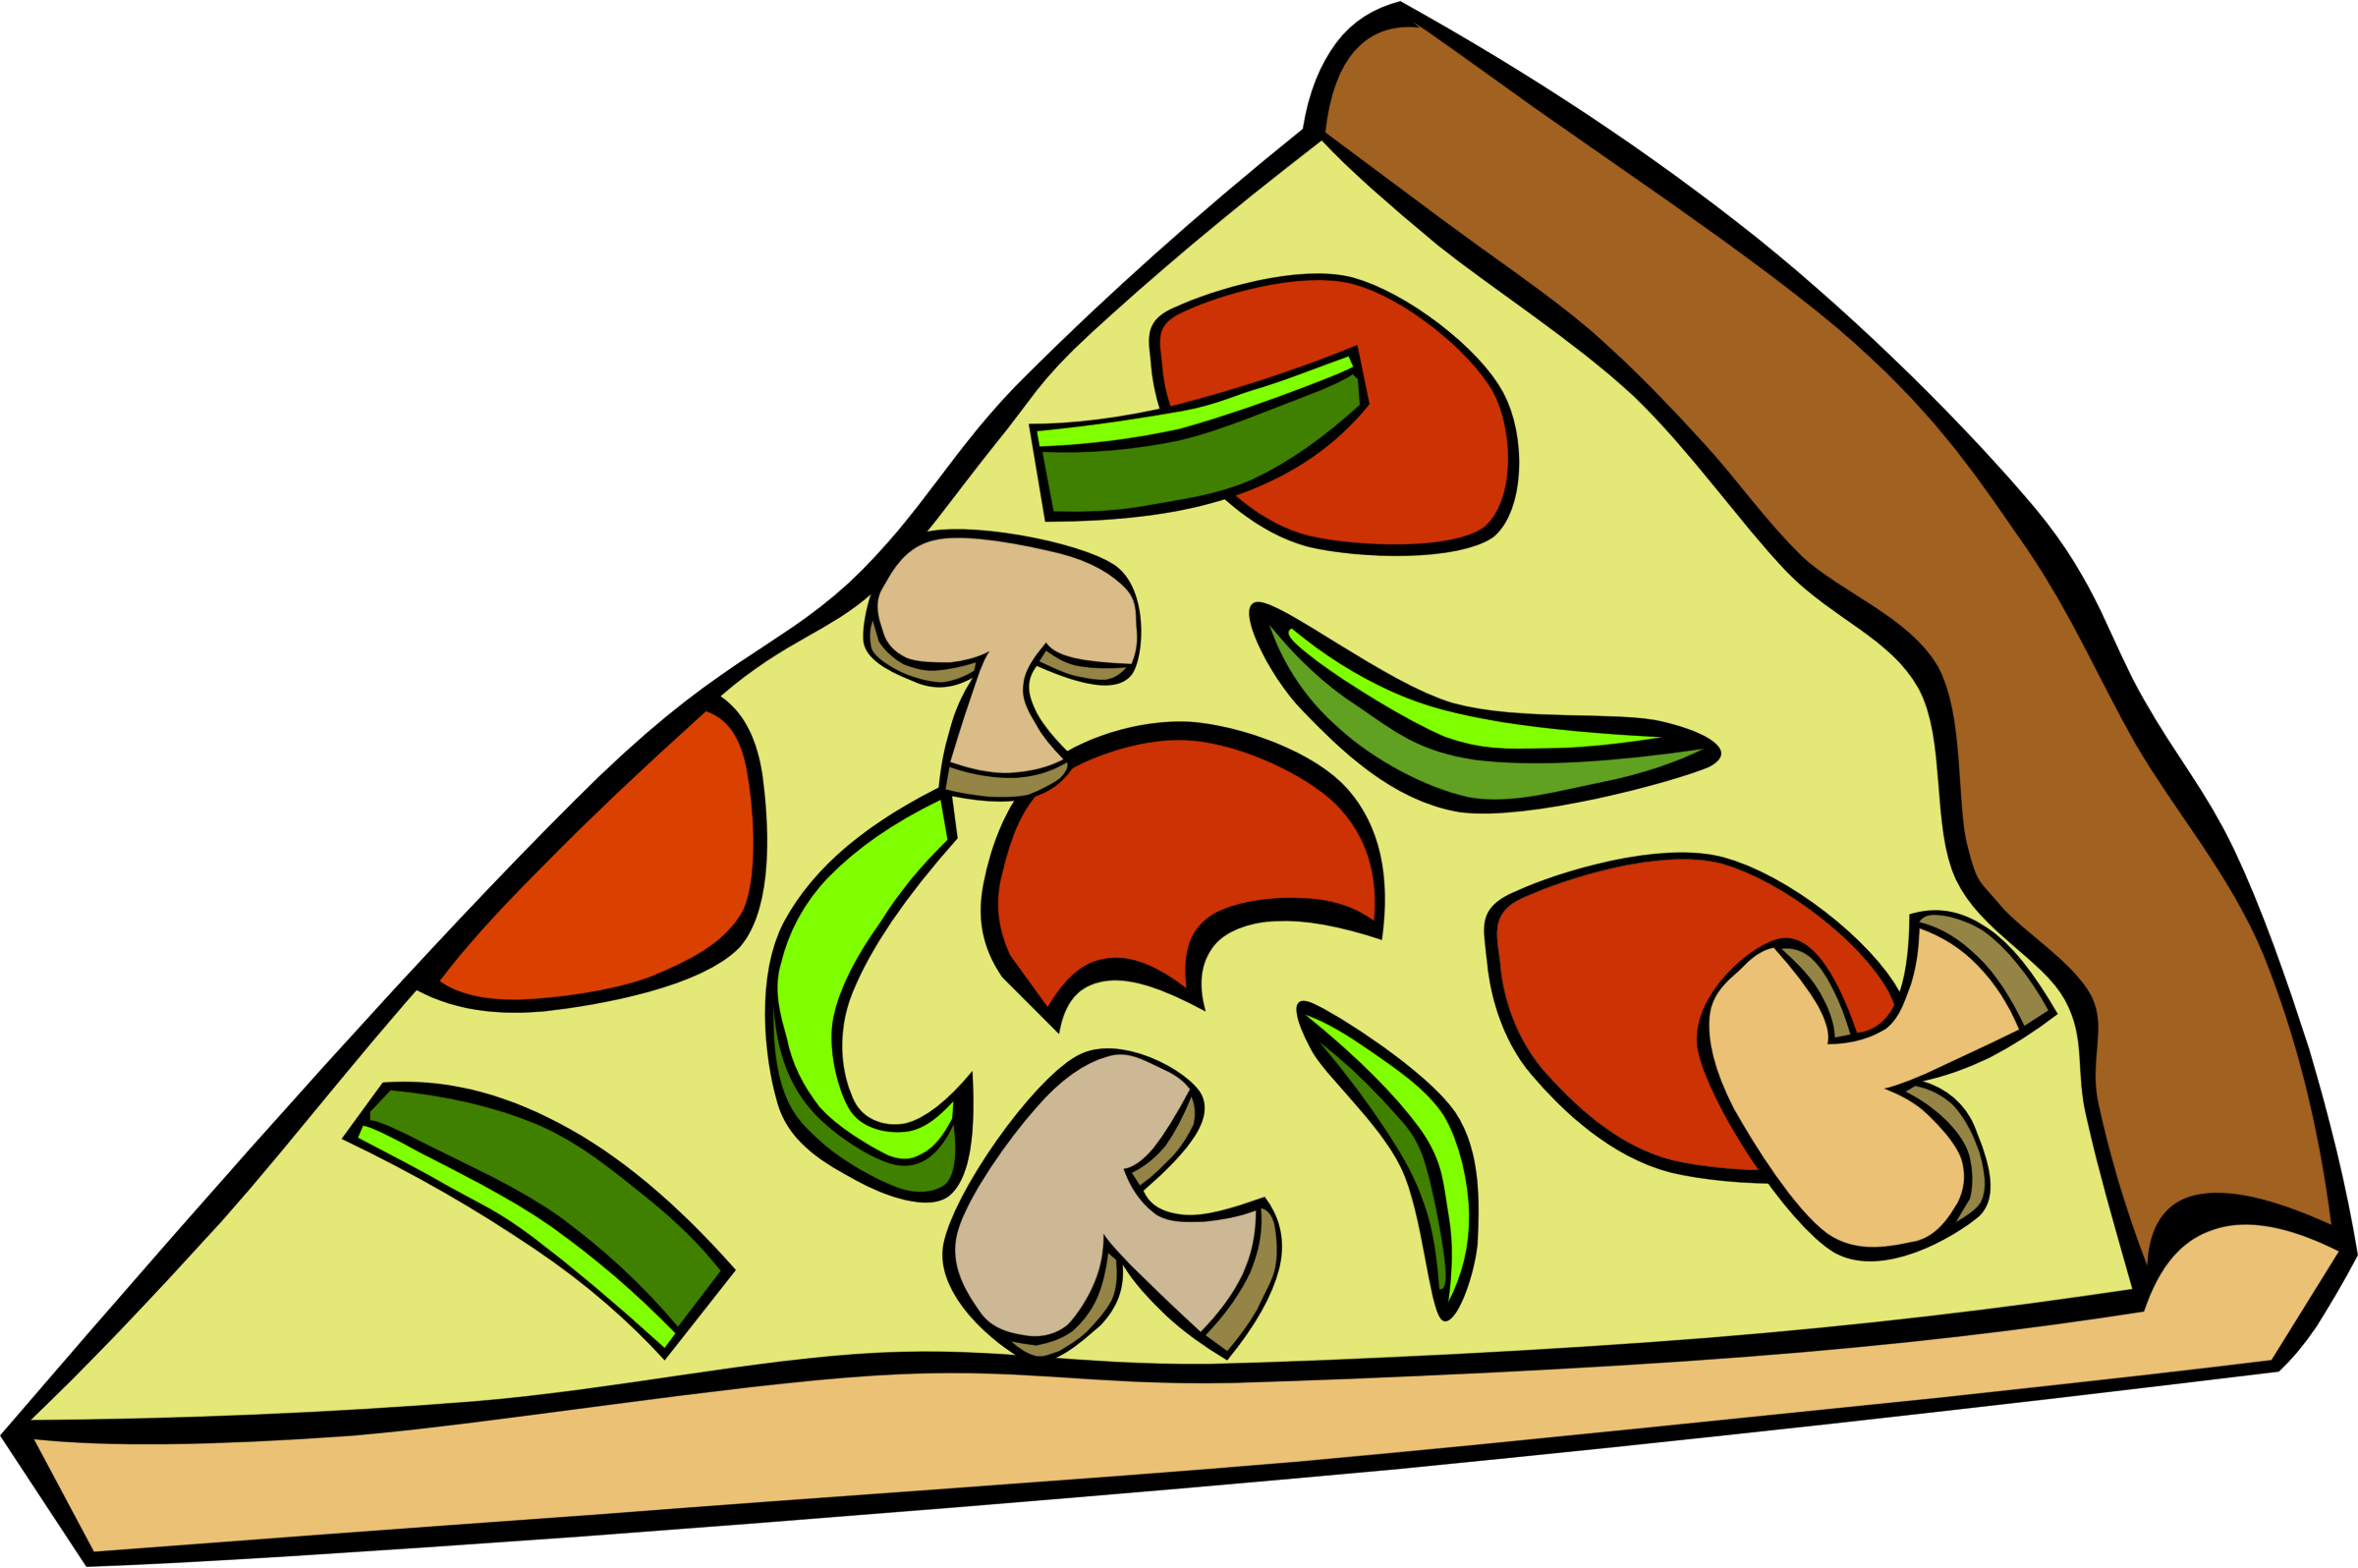 Pizza clipart big pizza. Fast food snack pepperoni